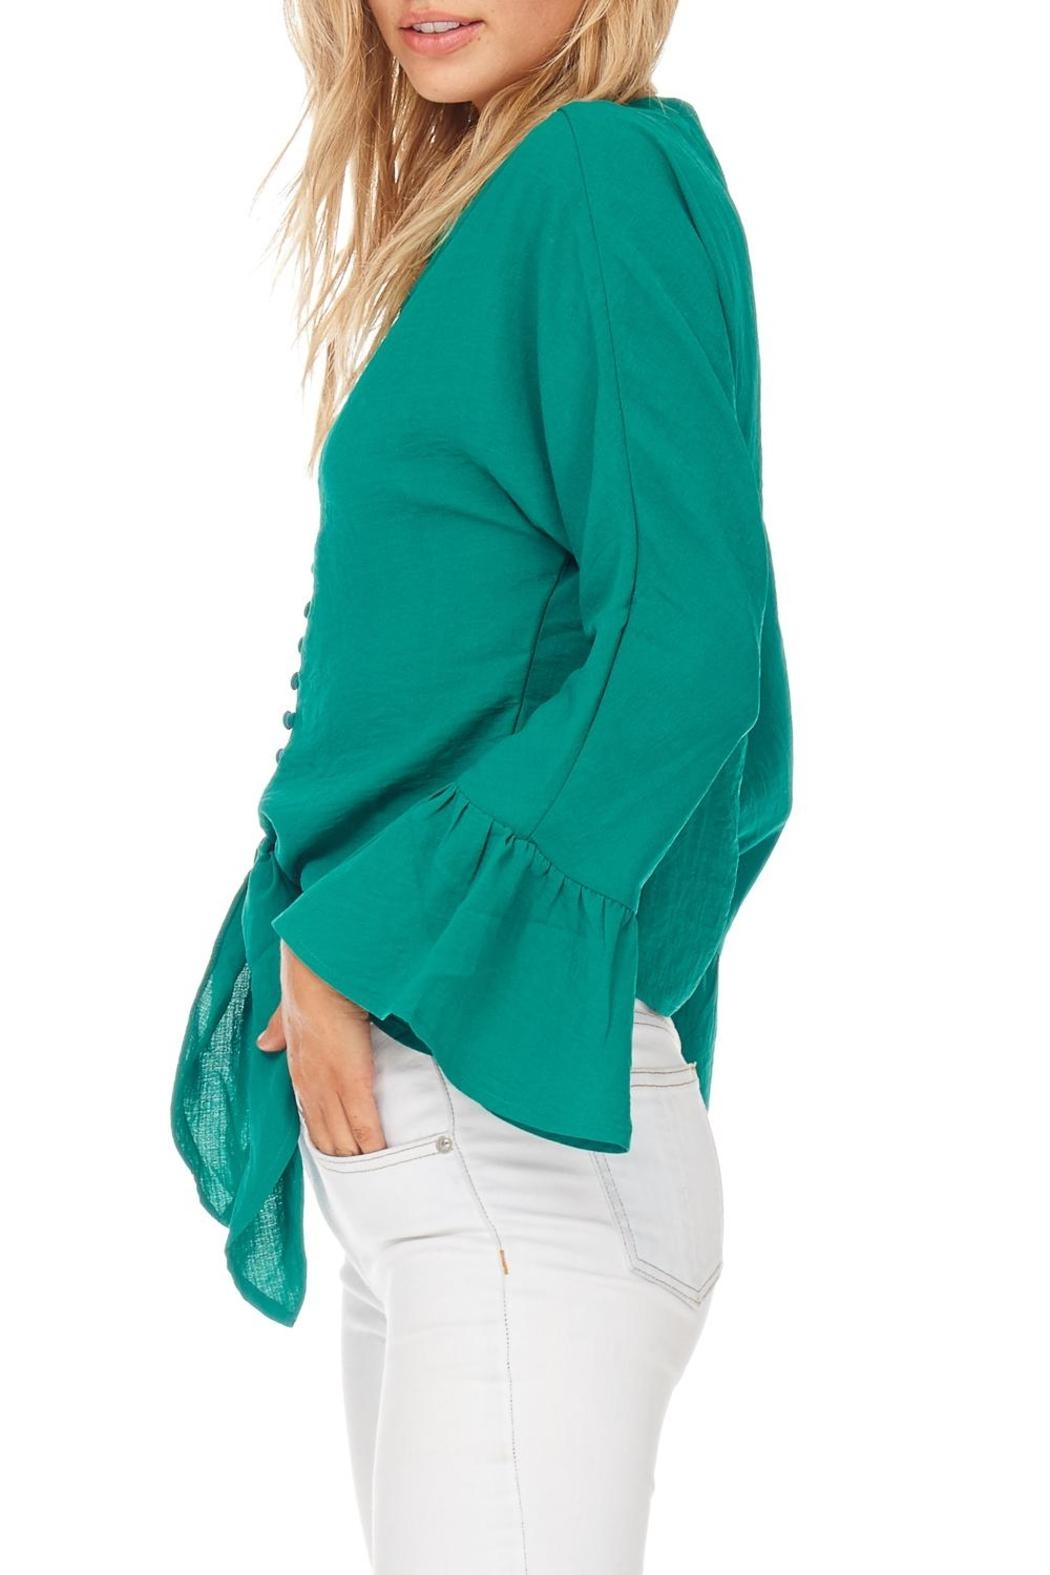 Miss Love Green Front Tie Blouse - Side Cropped Image